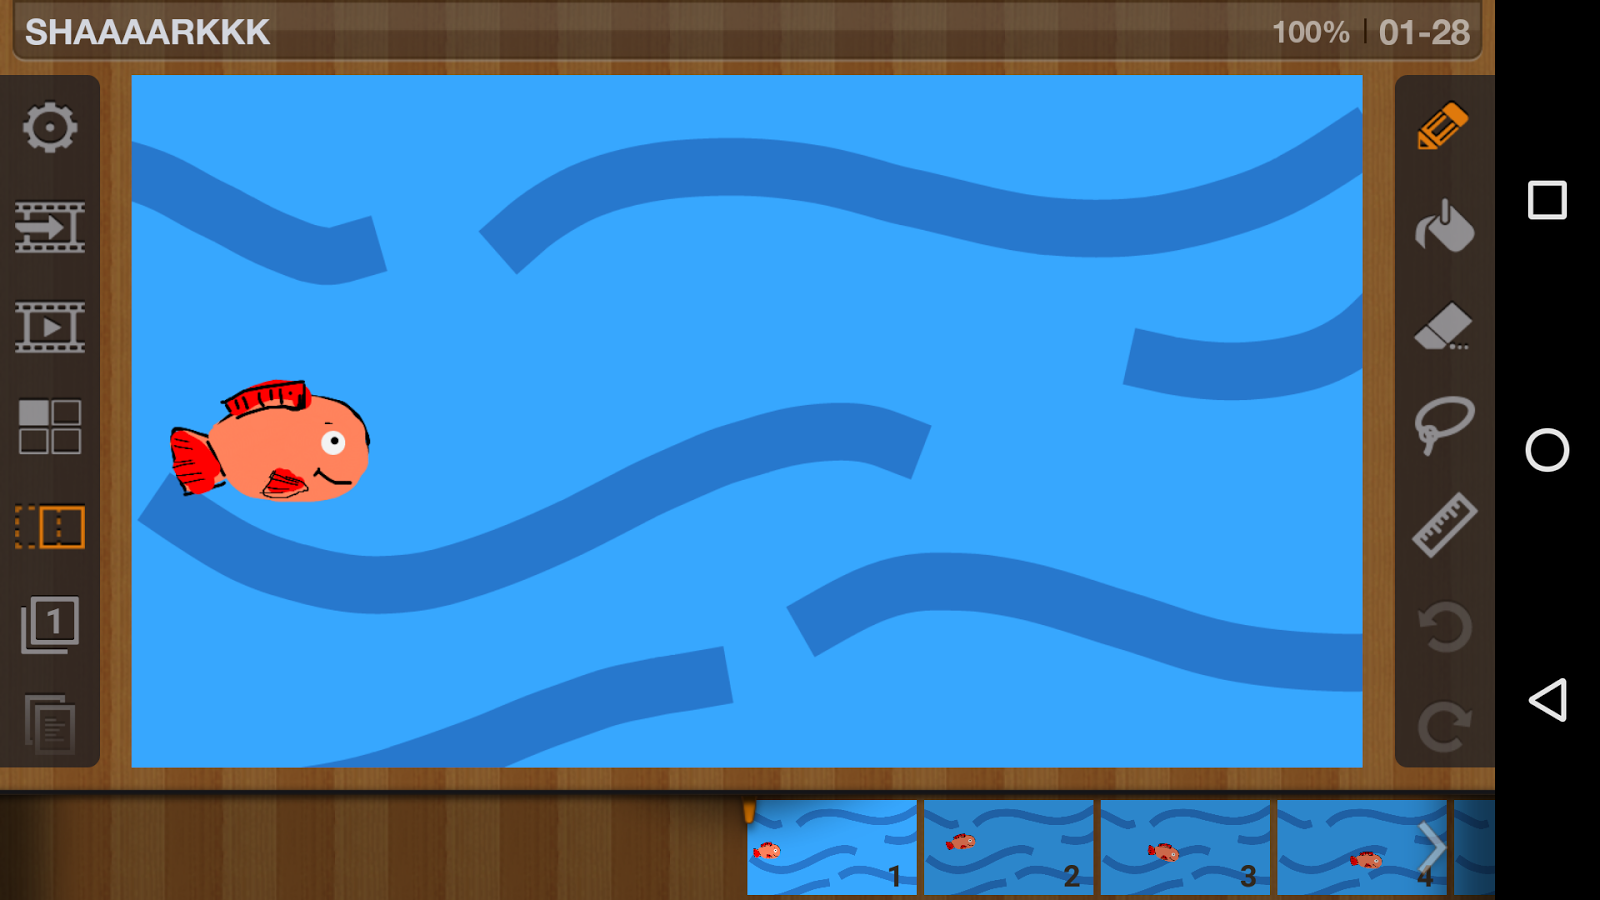 FlipaClip - Cartoon animation Screenshot 2